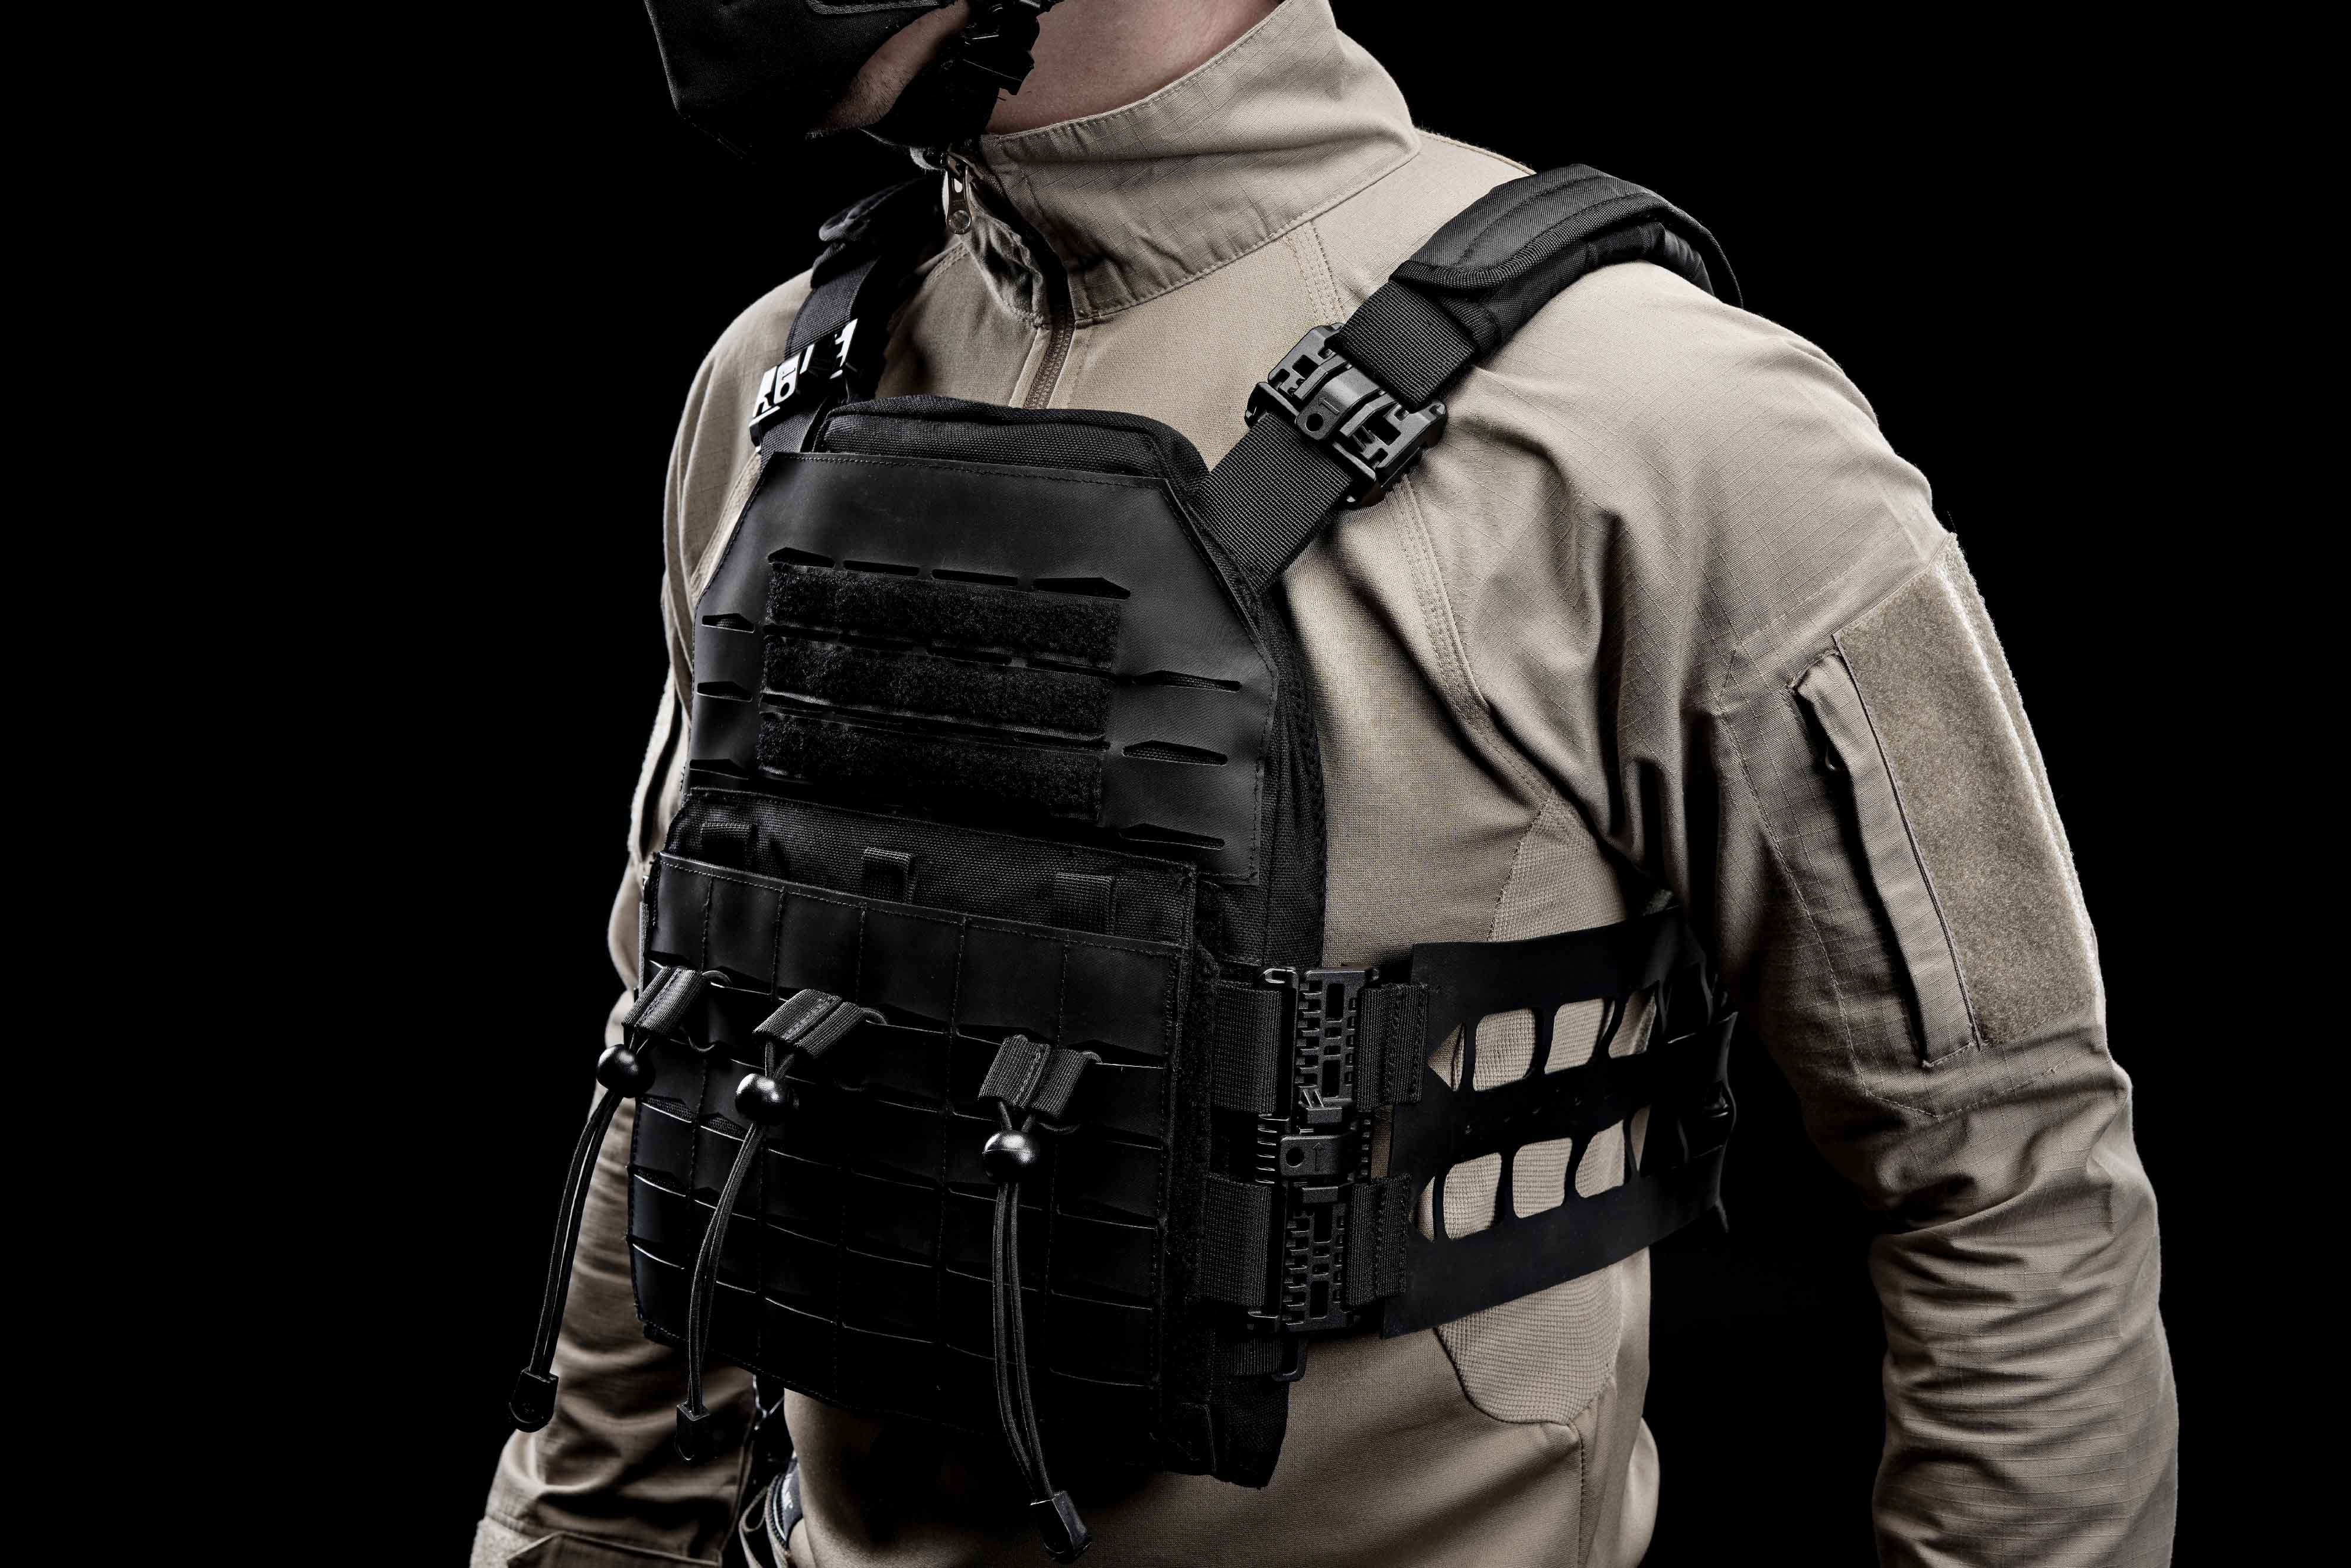 Hypafox Plate Carrier